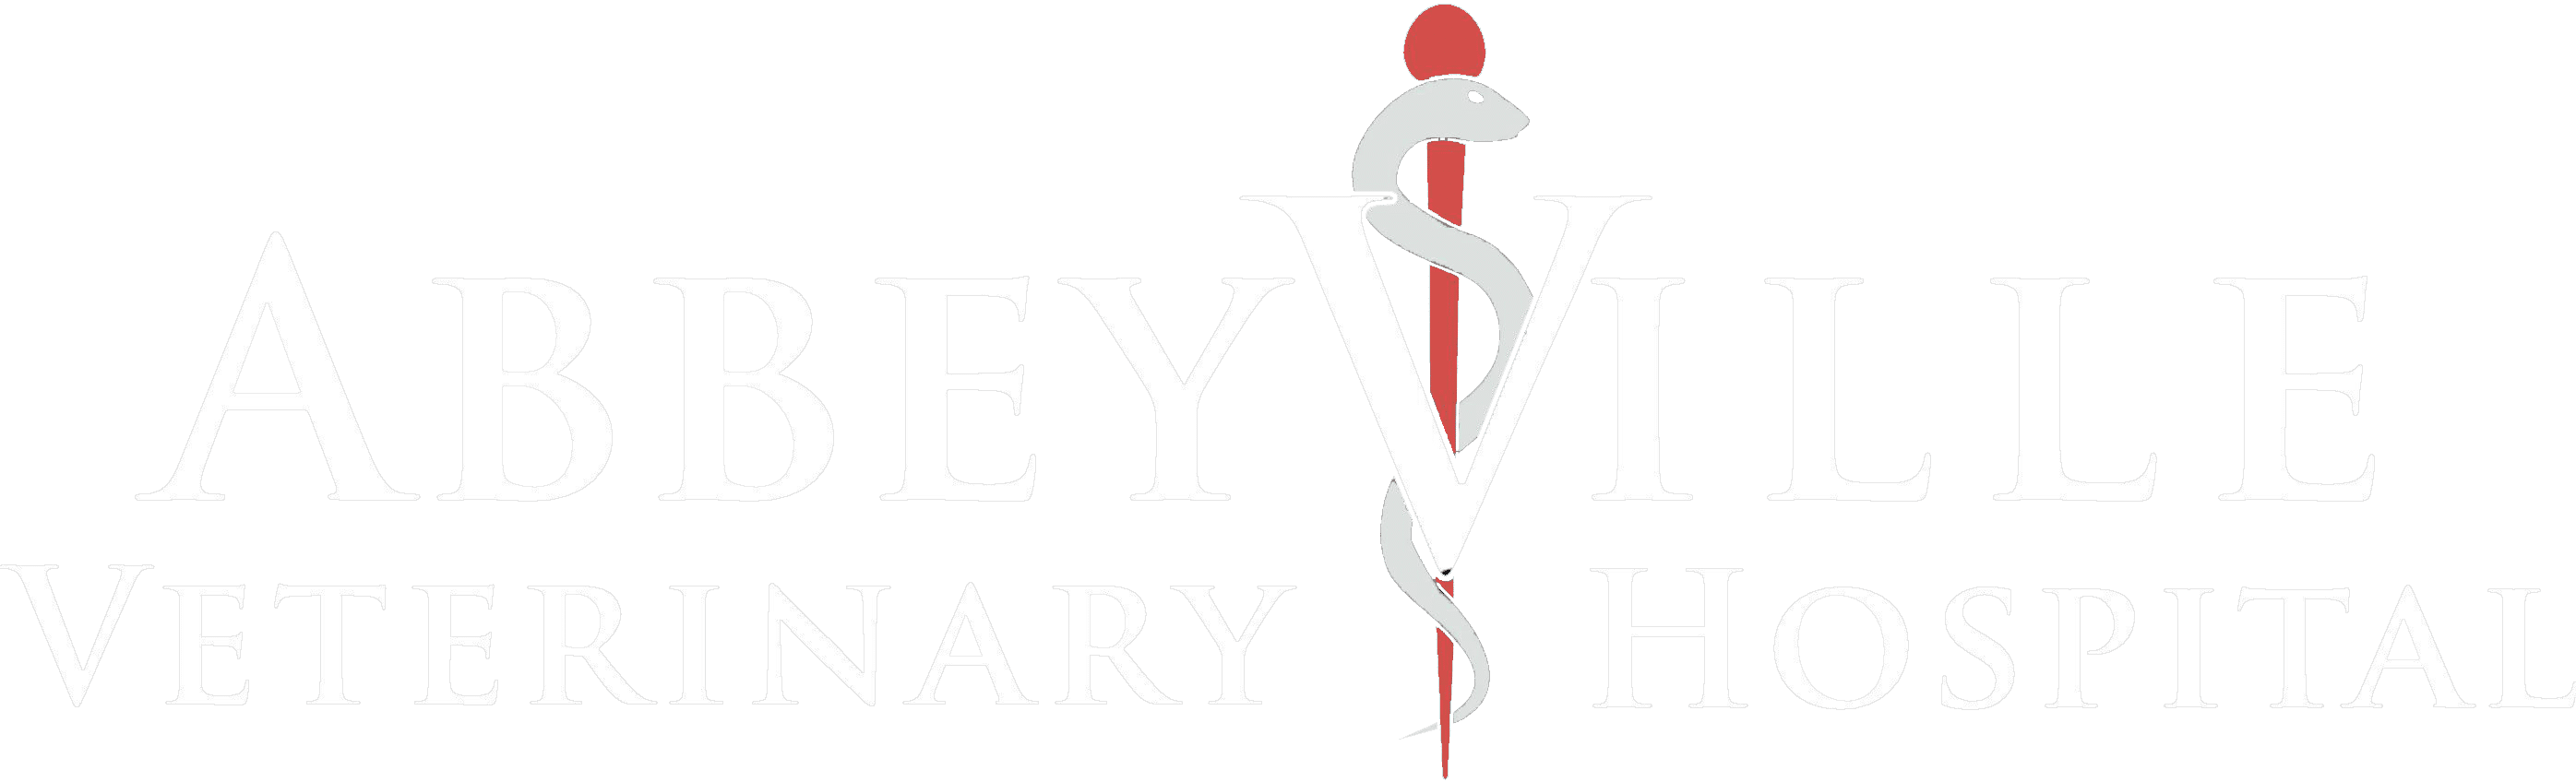 Abbeyville Veterinary Hospital Cork | Cork's Longest Established Private Vet Clinic